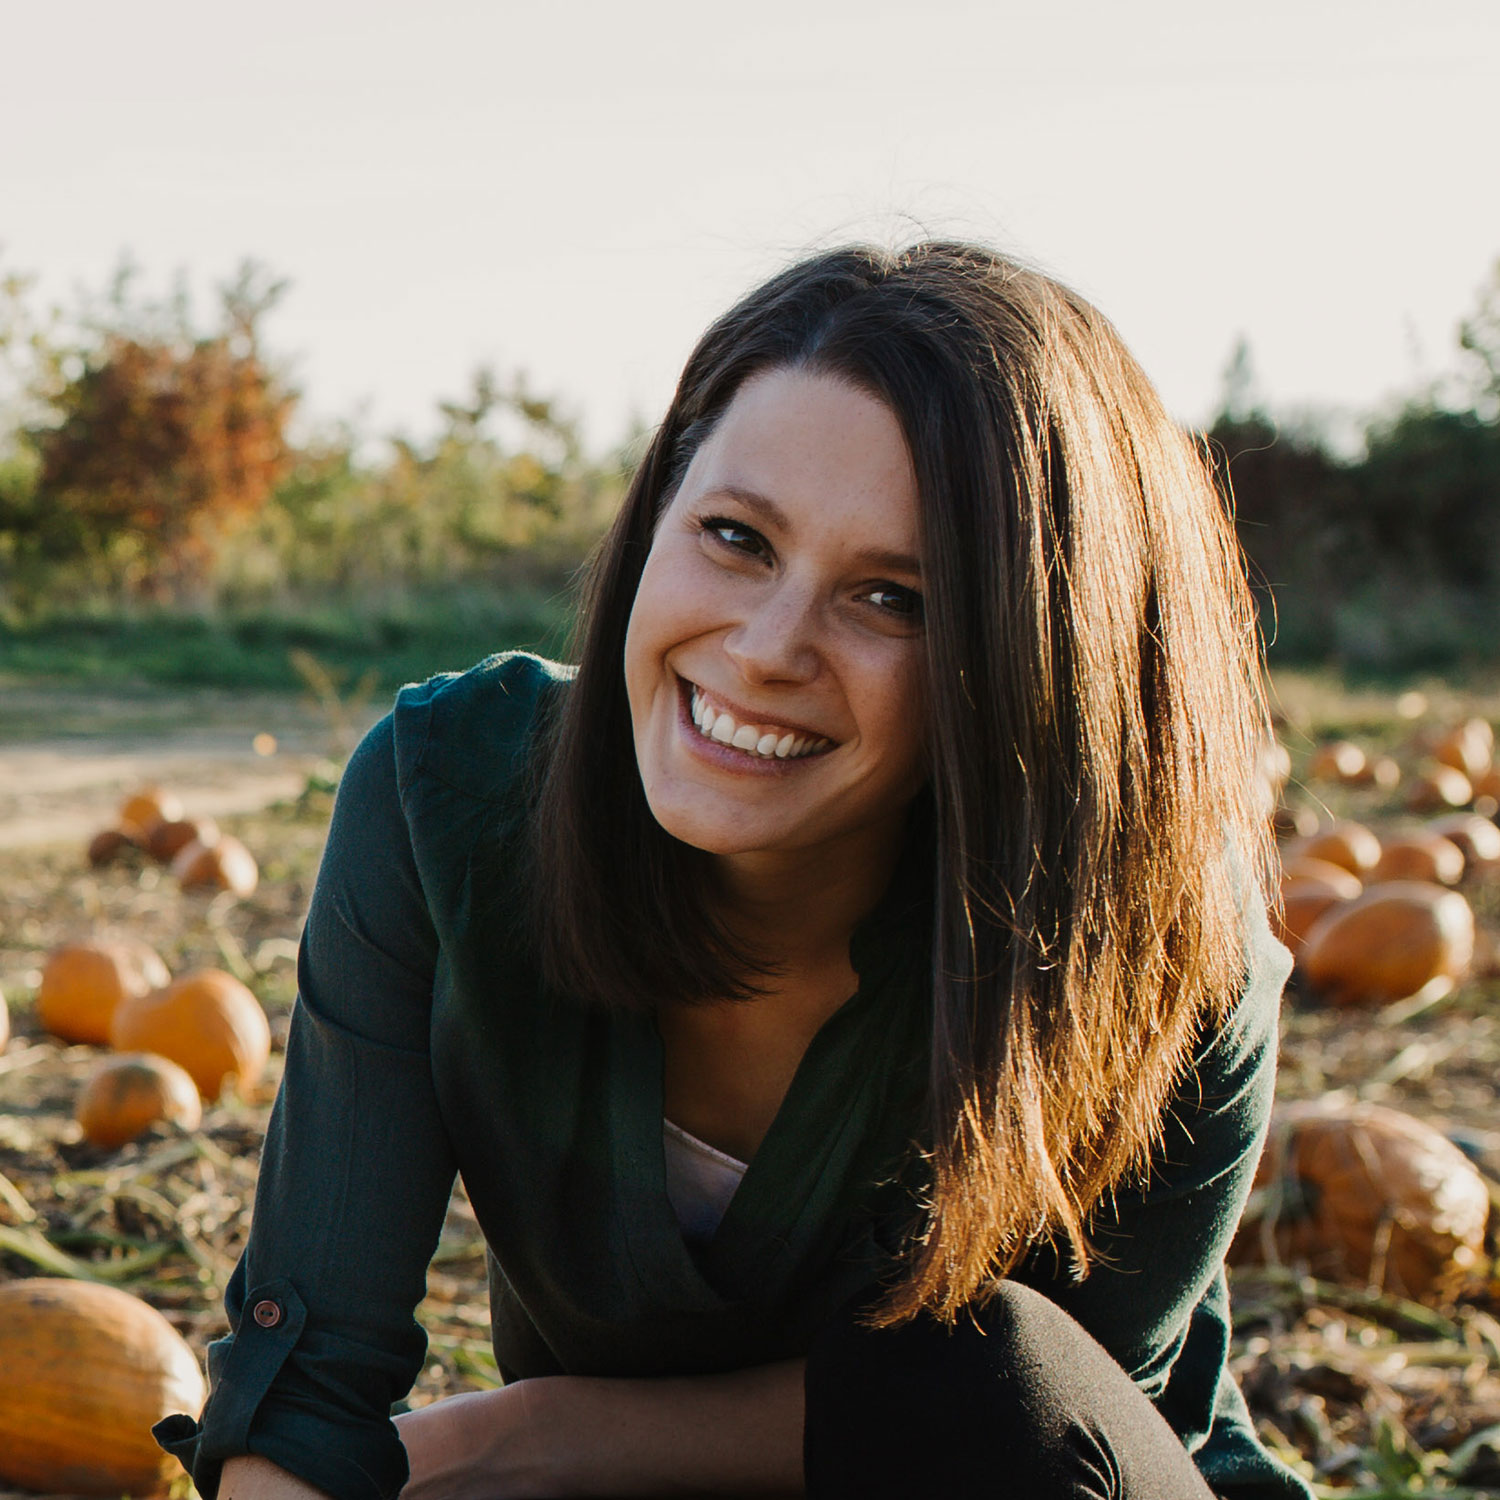 Crayligrapher - Lindsey is the linchpin—the other half of Tierney Studio, Crayligraphy and of course, Colin. She makes all things work through organizing events, planning workshops and managing the day-to-day responsibilities to keep Crayligraphy alive and well!More importantly, Lindsey is a stay-at-home mommy of 3 and the very reason Colin is able to continue his pursuit in making Crayligraphy a go-to platform for all things letterforms.Instagram